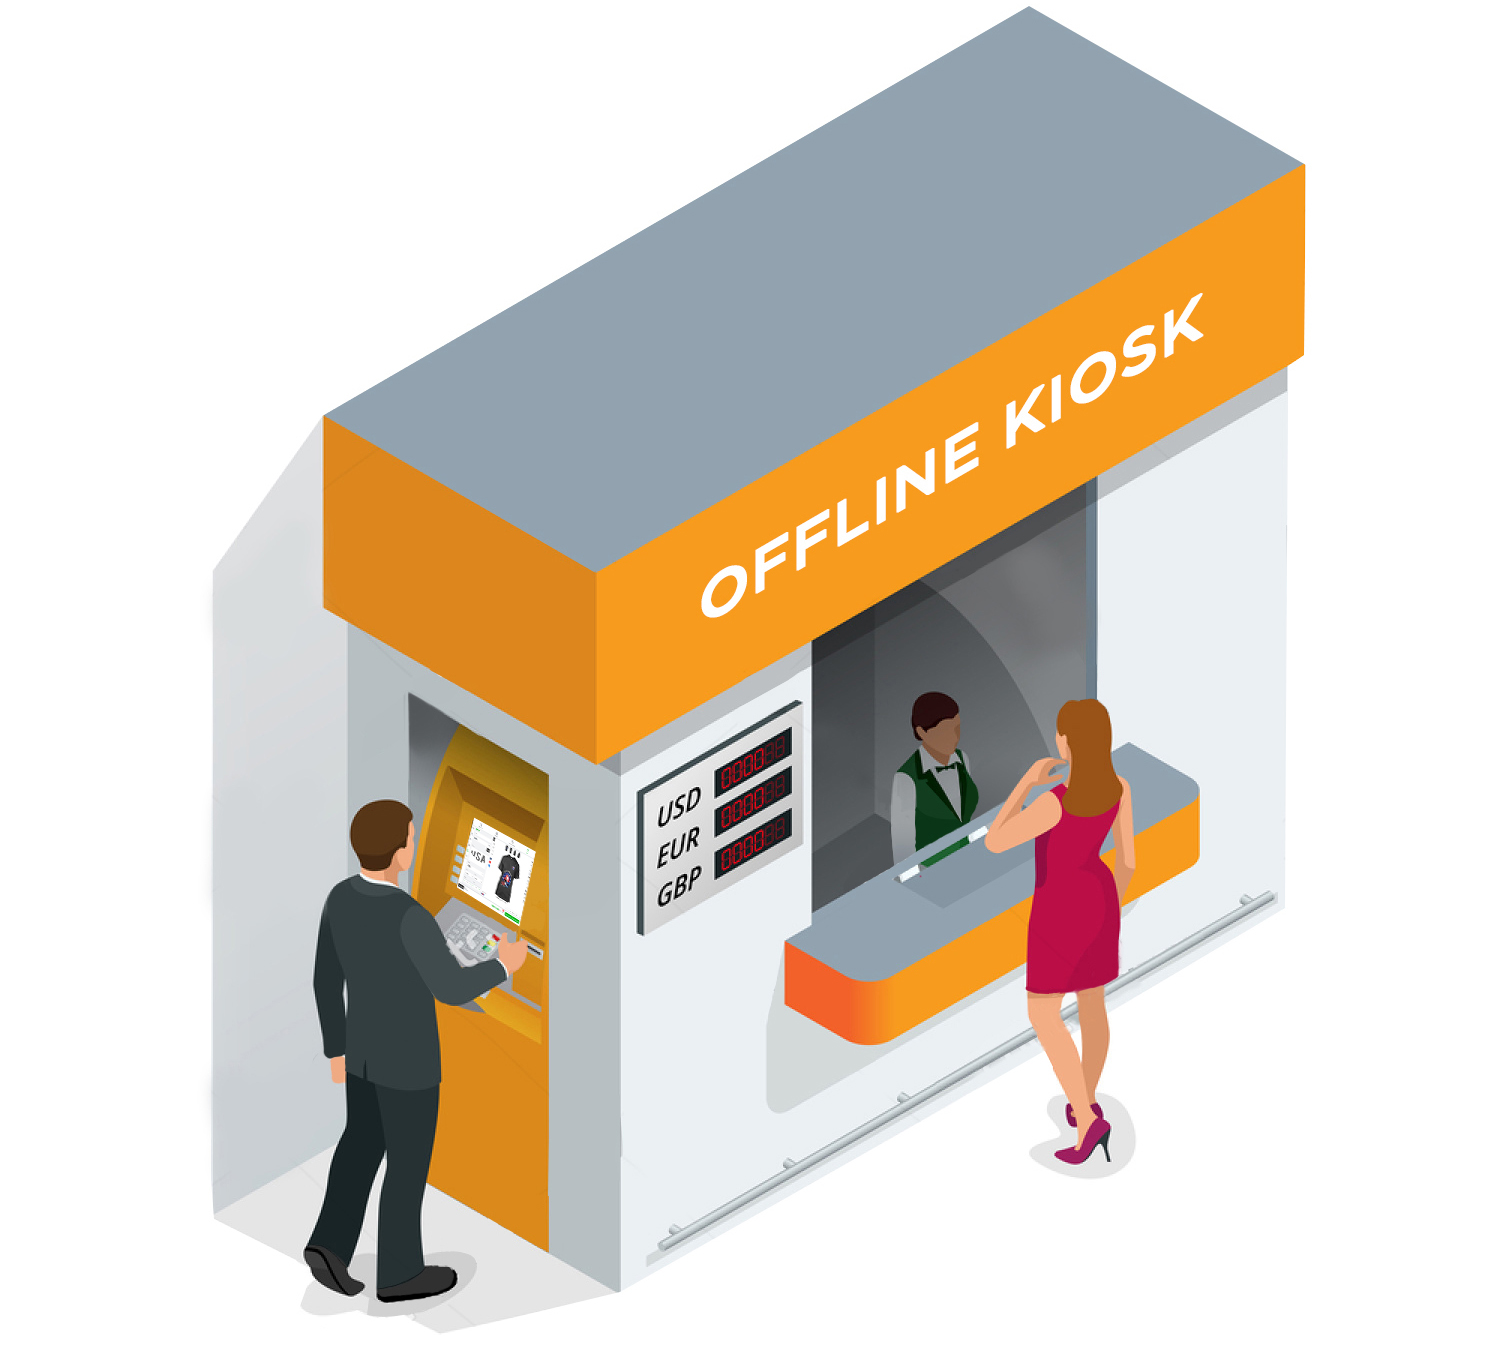 offline kiosk design software